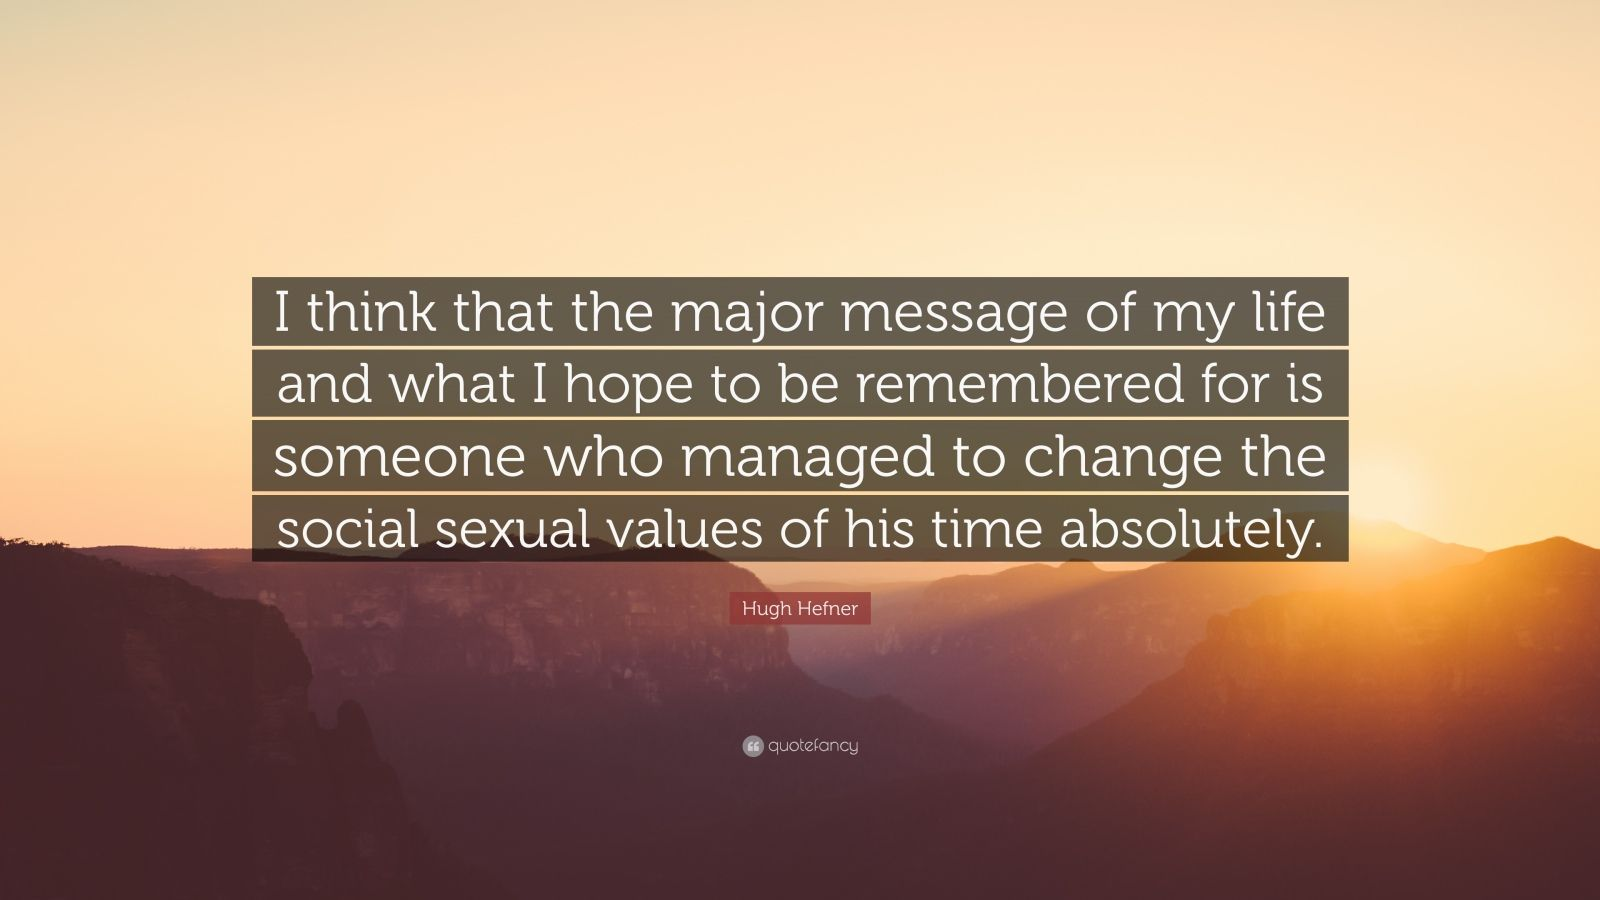 """Hugh Hefner Quote: """"I think that the major message of my life and what I hope to be remembered for is someone who managed to change the social sexual values of his time absolutely."""""""